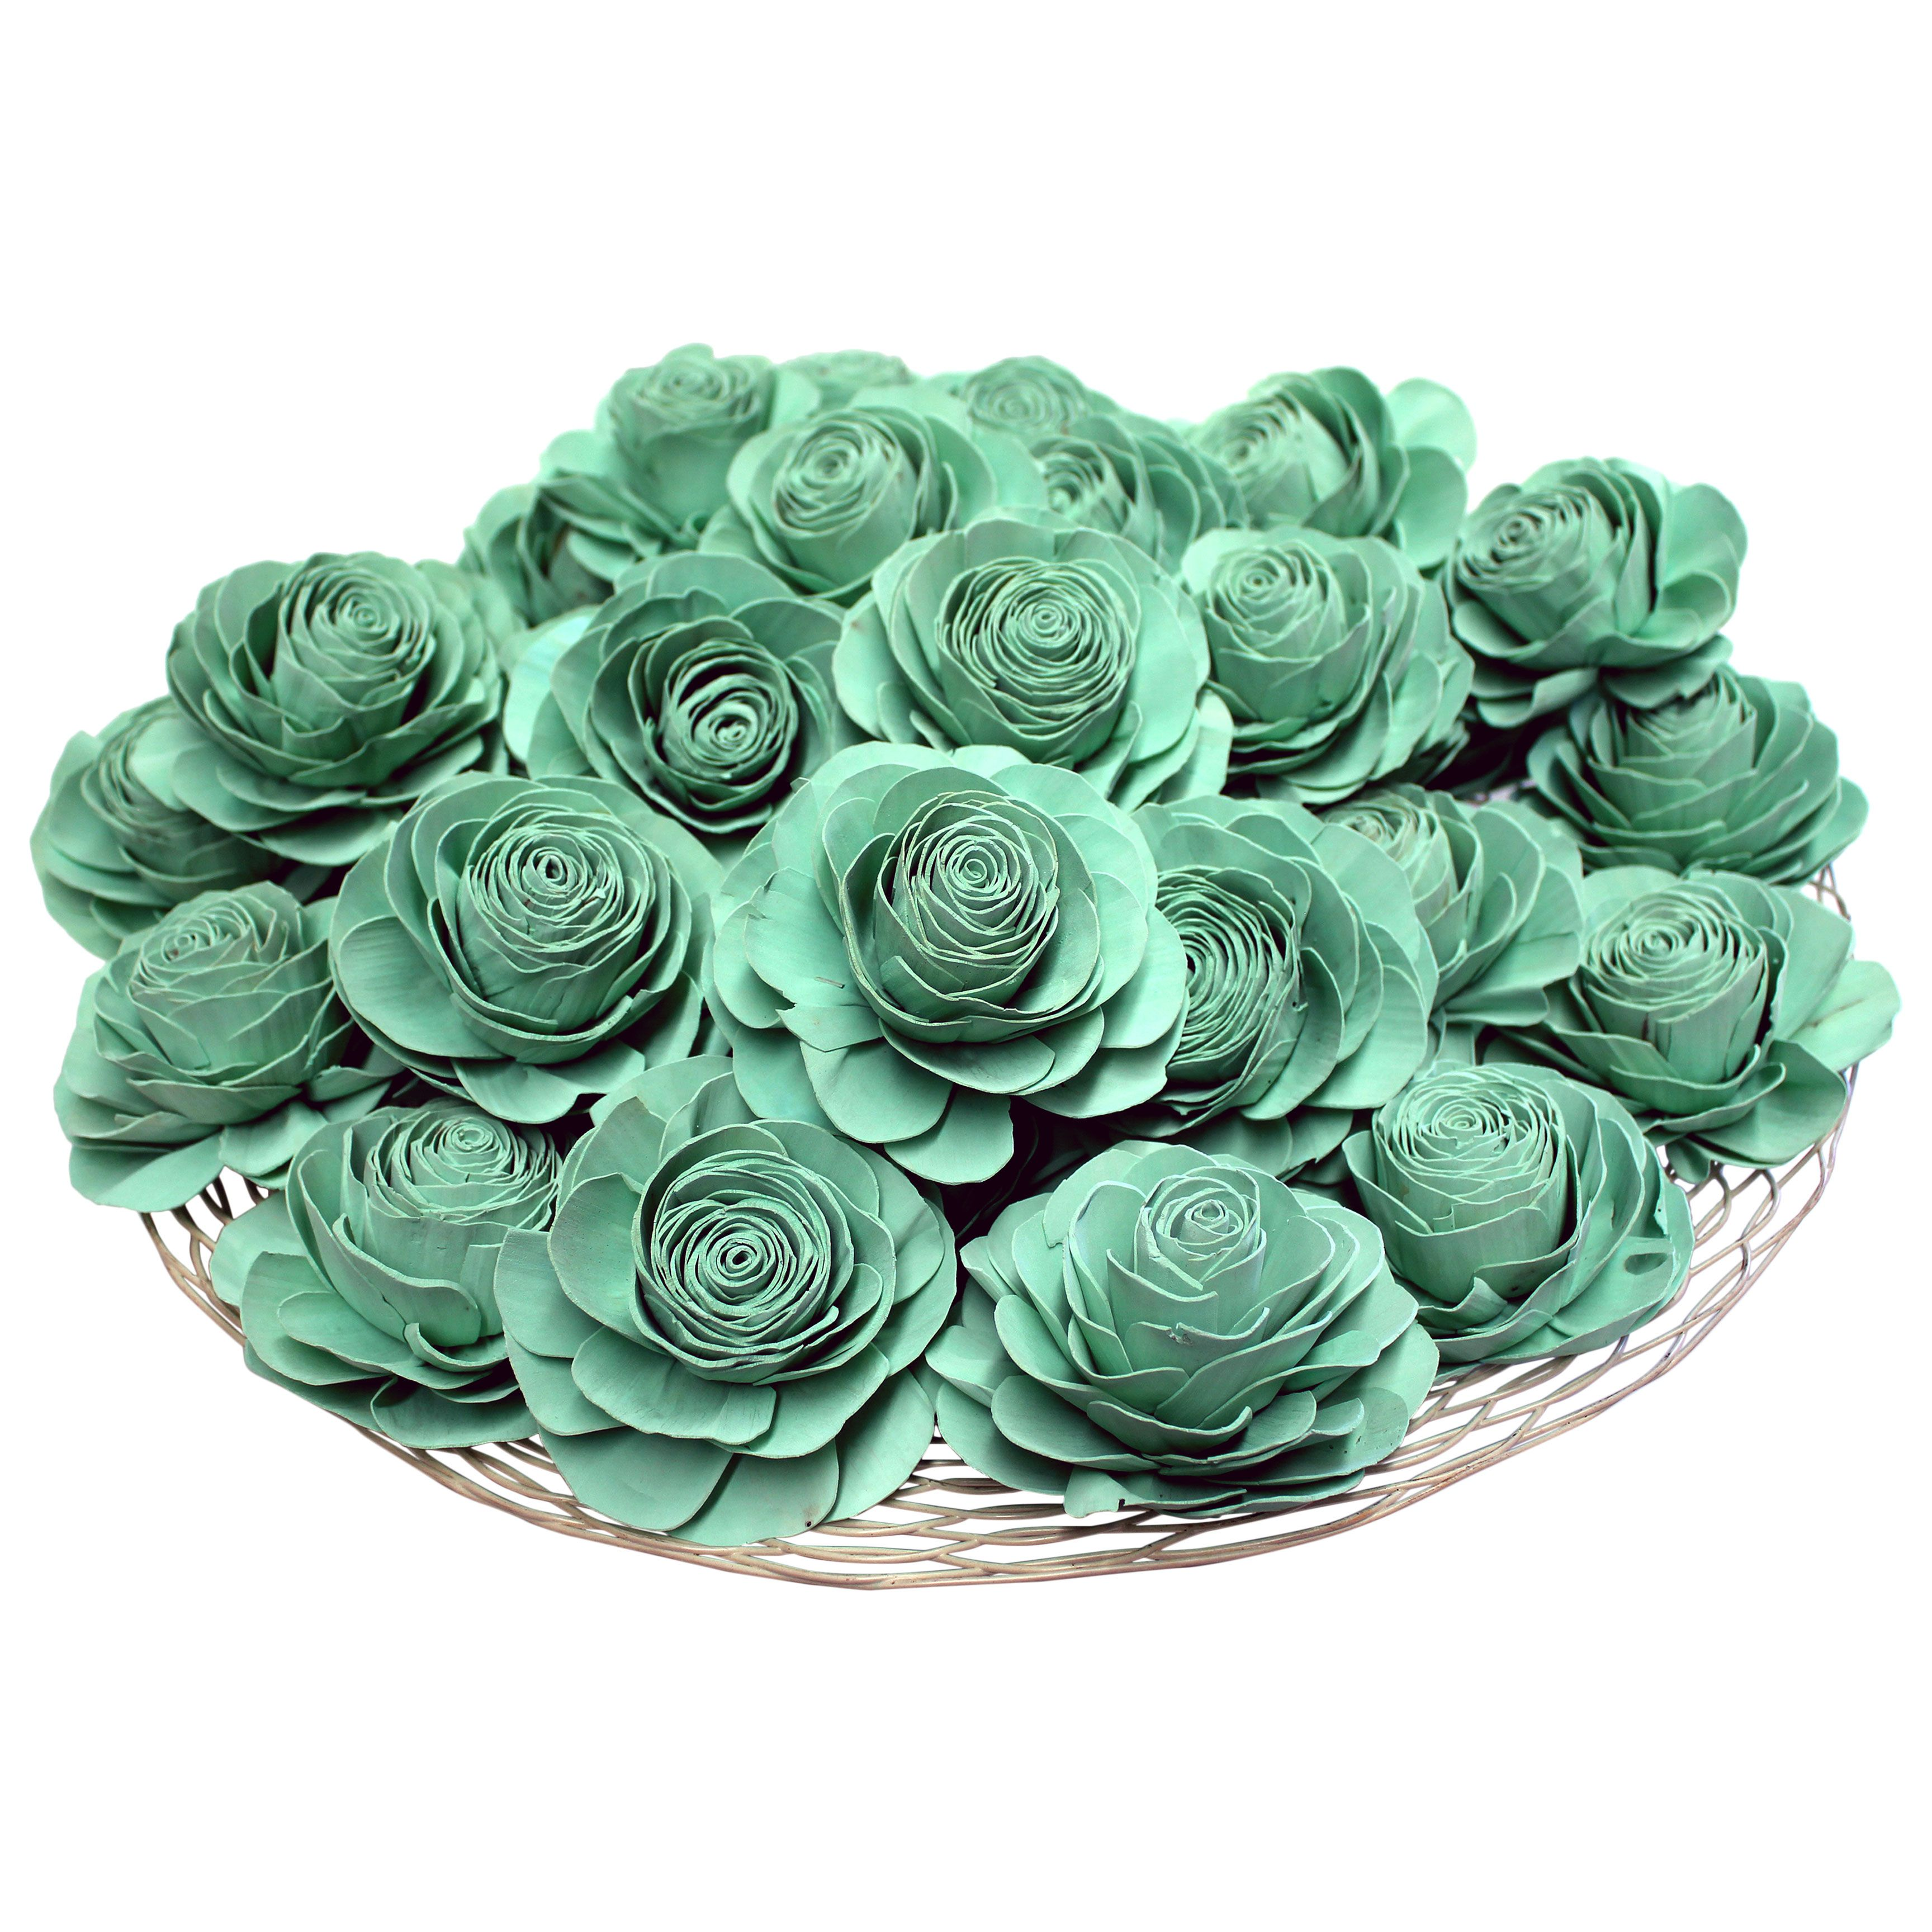 Mint Green Paper Flowers I Available at http://www.angelaromatics.com.au/fragrant-flowers/all-flowers-and-shapes/light-green-flower-lola